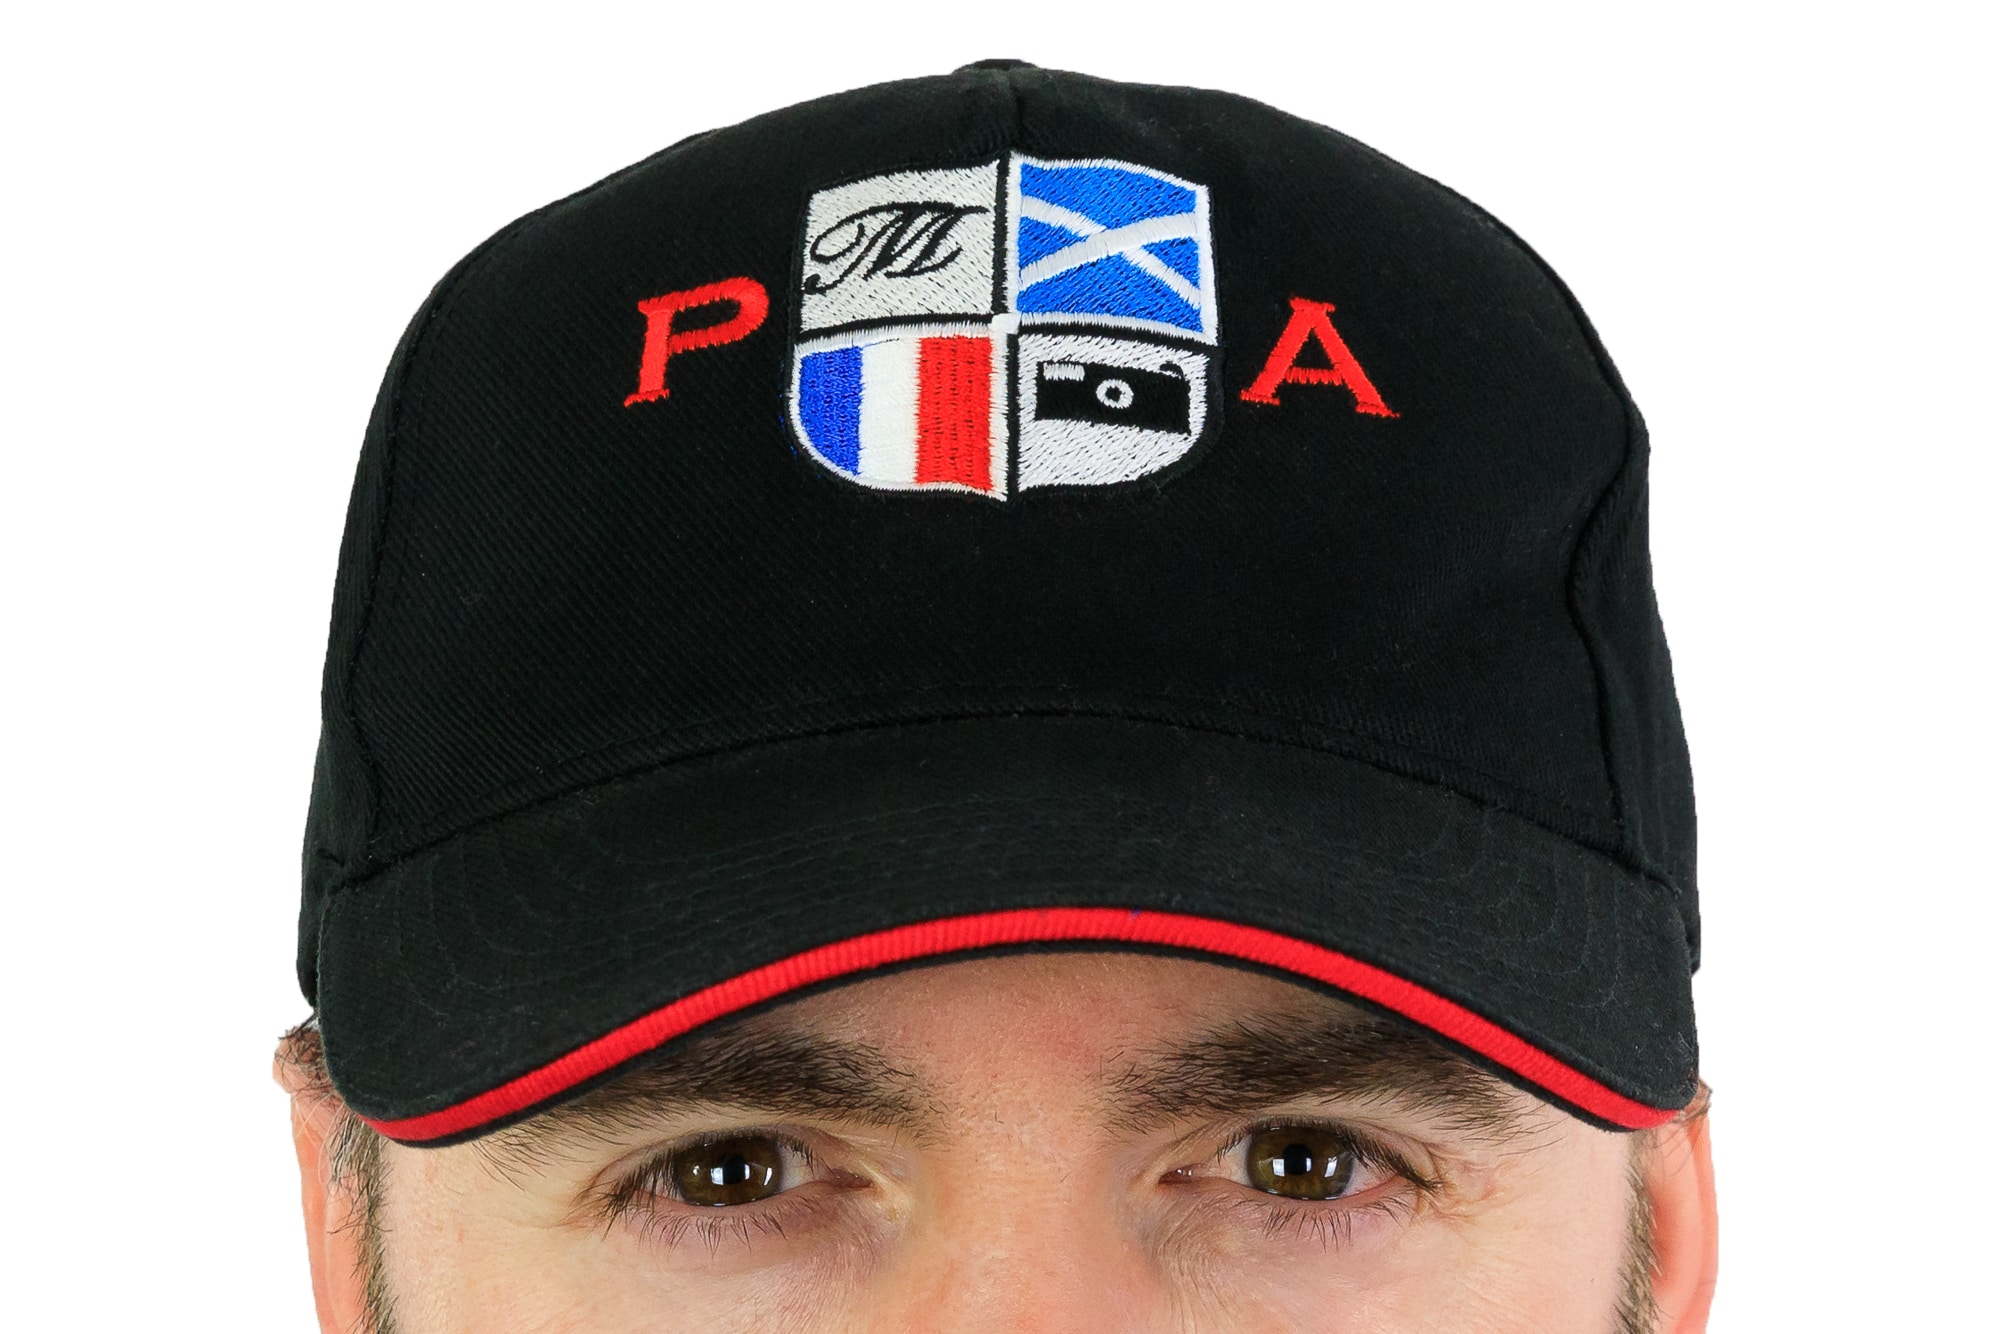 casquette officielle de La Photo Académie - vue de face